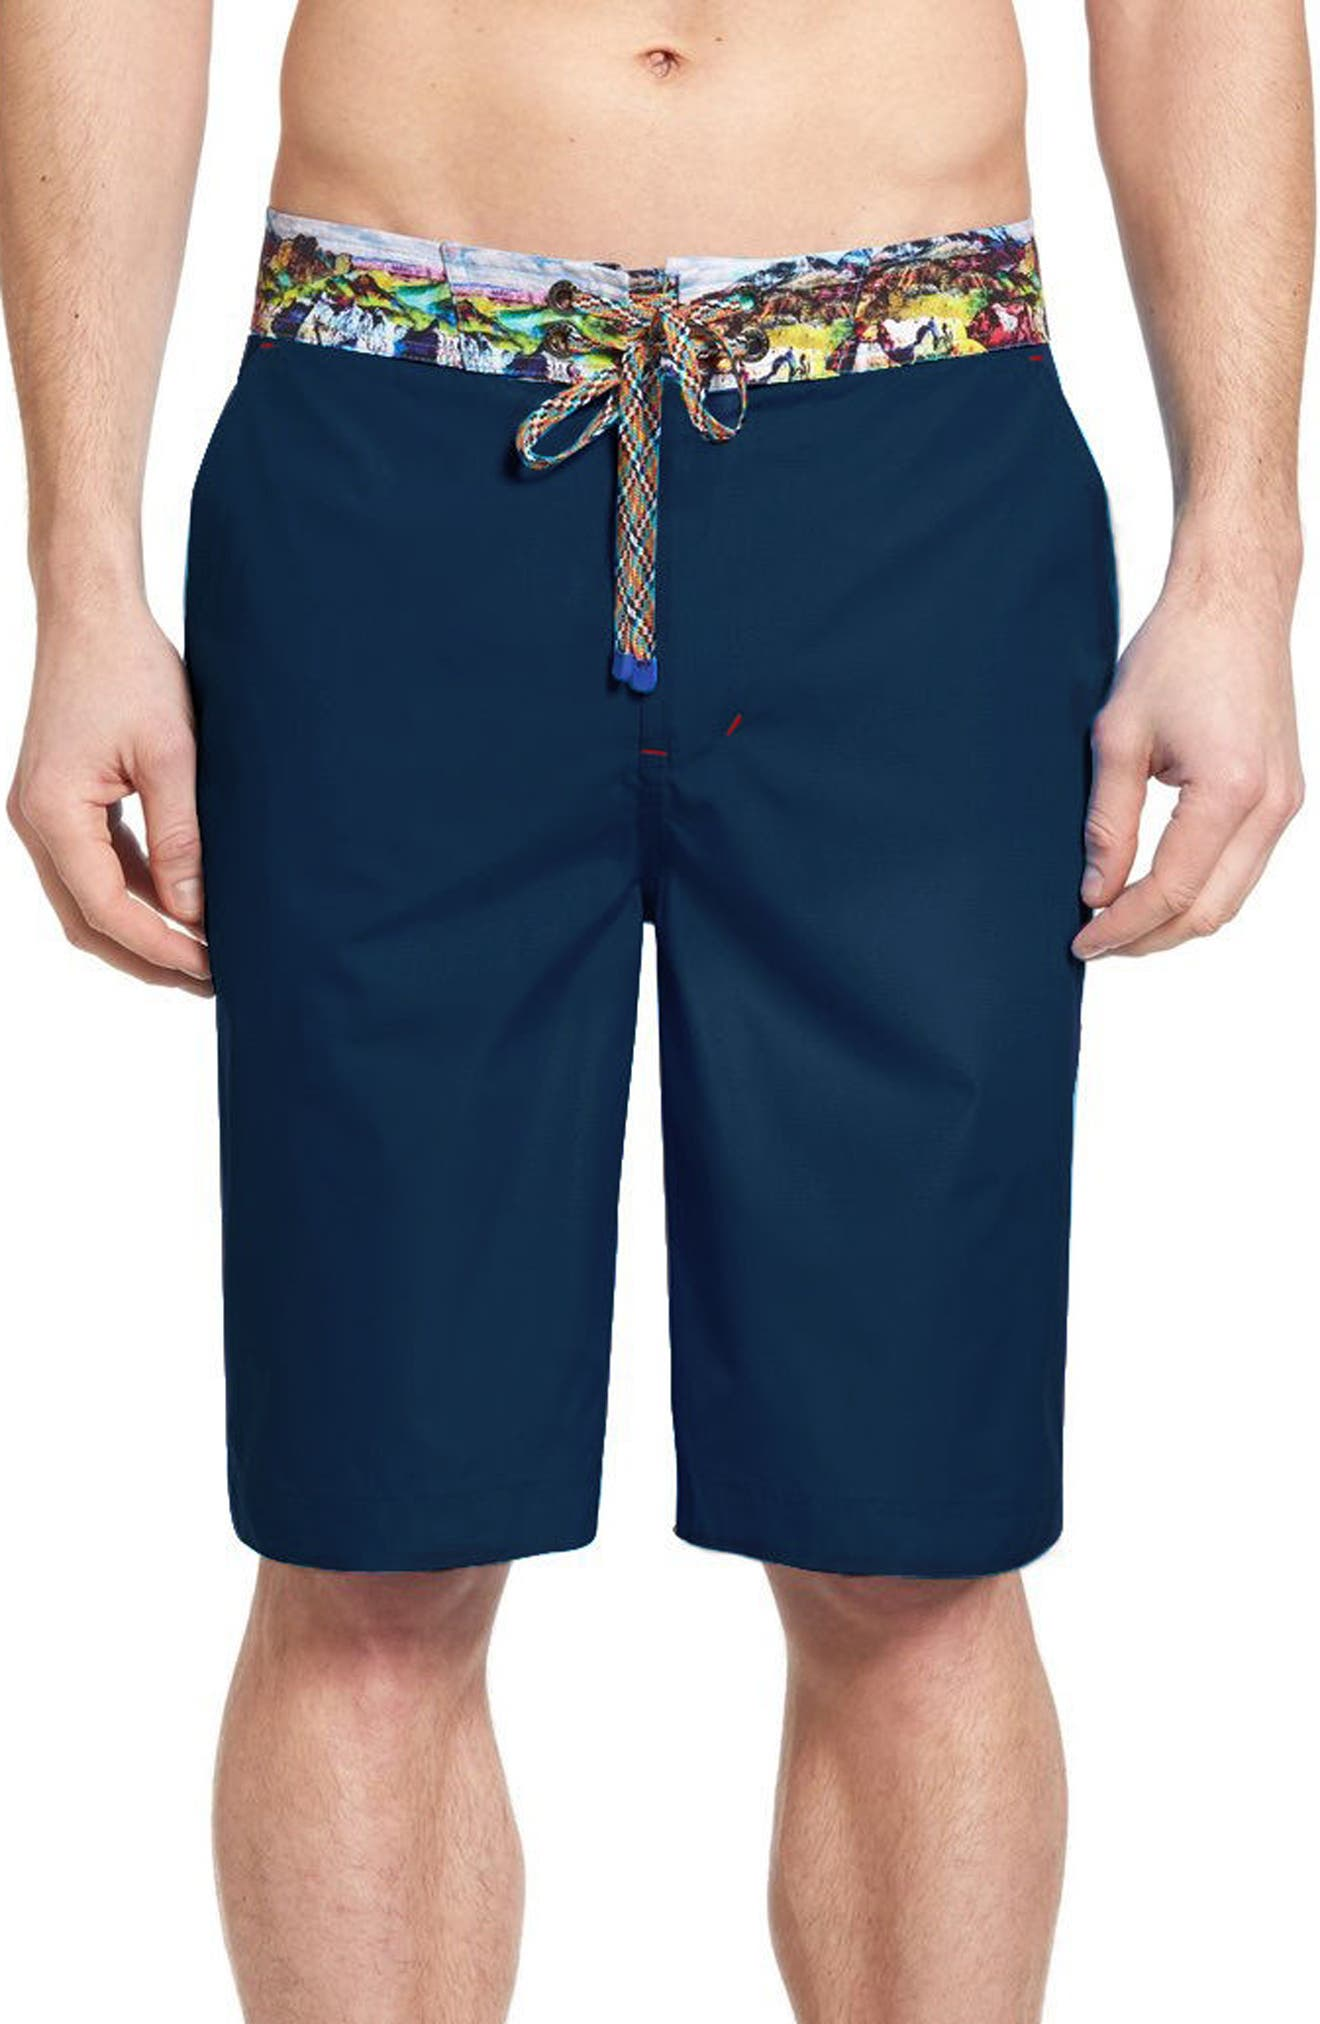 Robert Graham Boundless Board Shorts